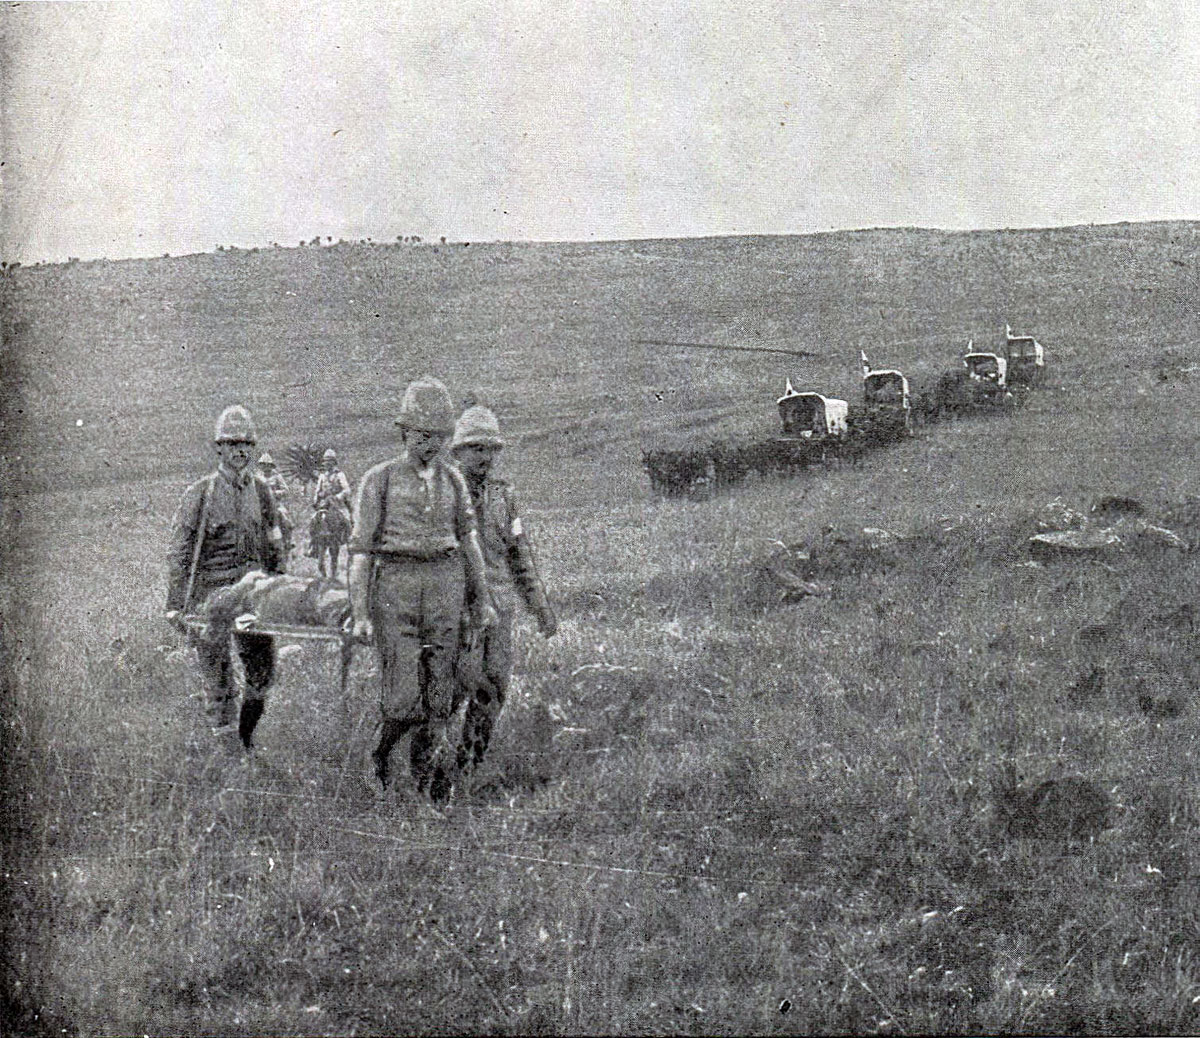 Bringing in British casualties after the Battle of Spion Kop on 24th January 1900 in the Boer War